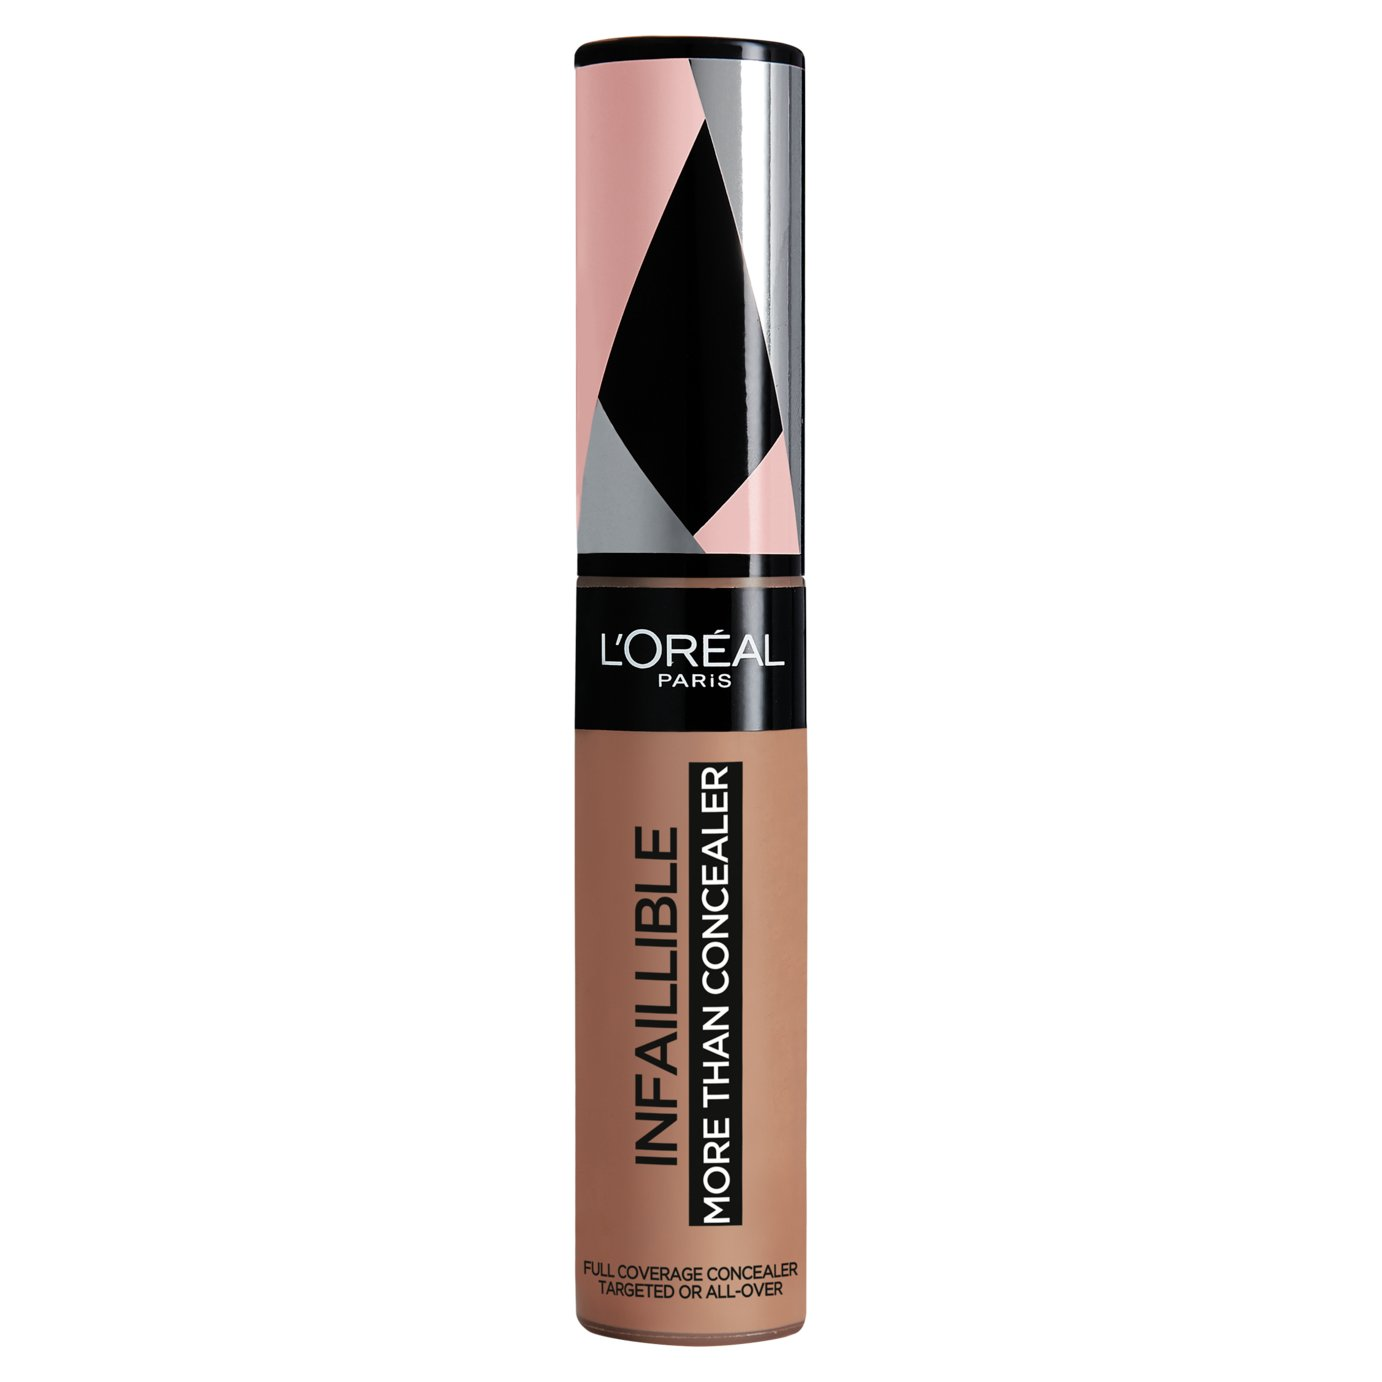 L'Oreal Paris Infallible Concealer Toffee 336 - 11ml